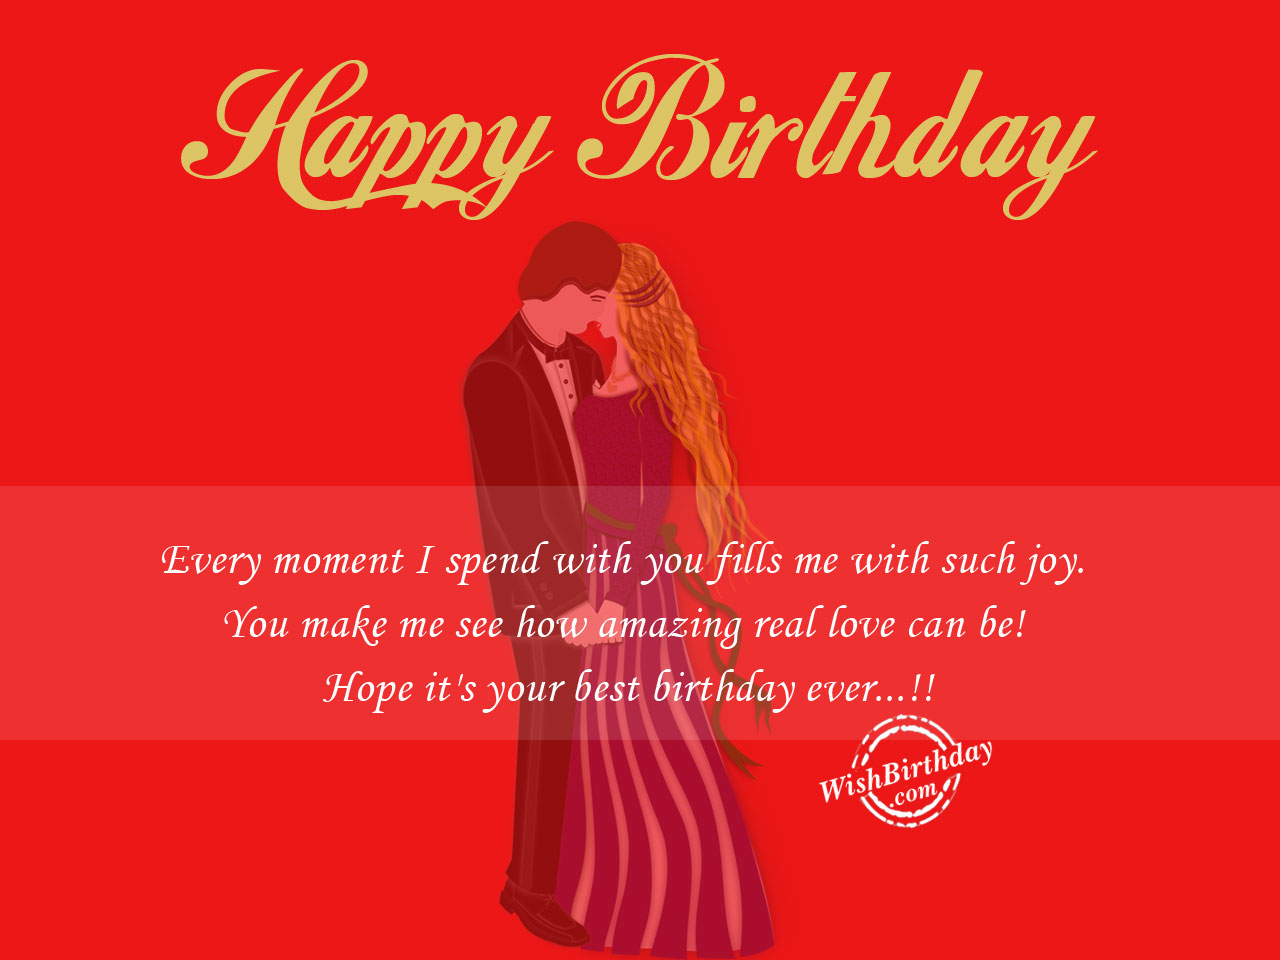 birthday wishes for spouse greeting cards ; My-everlasting-love